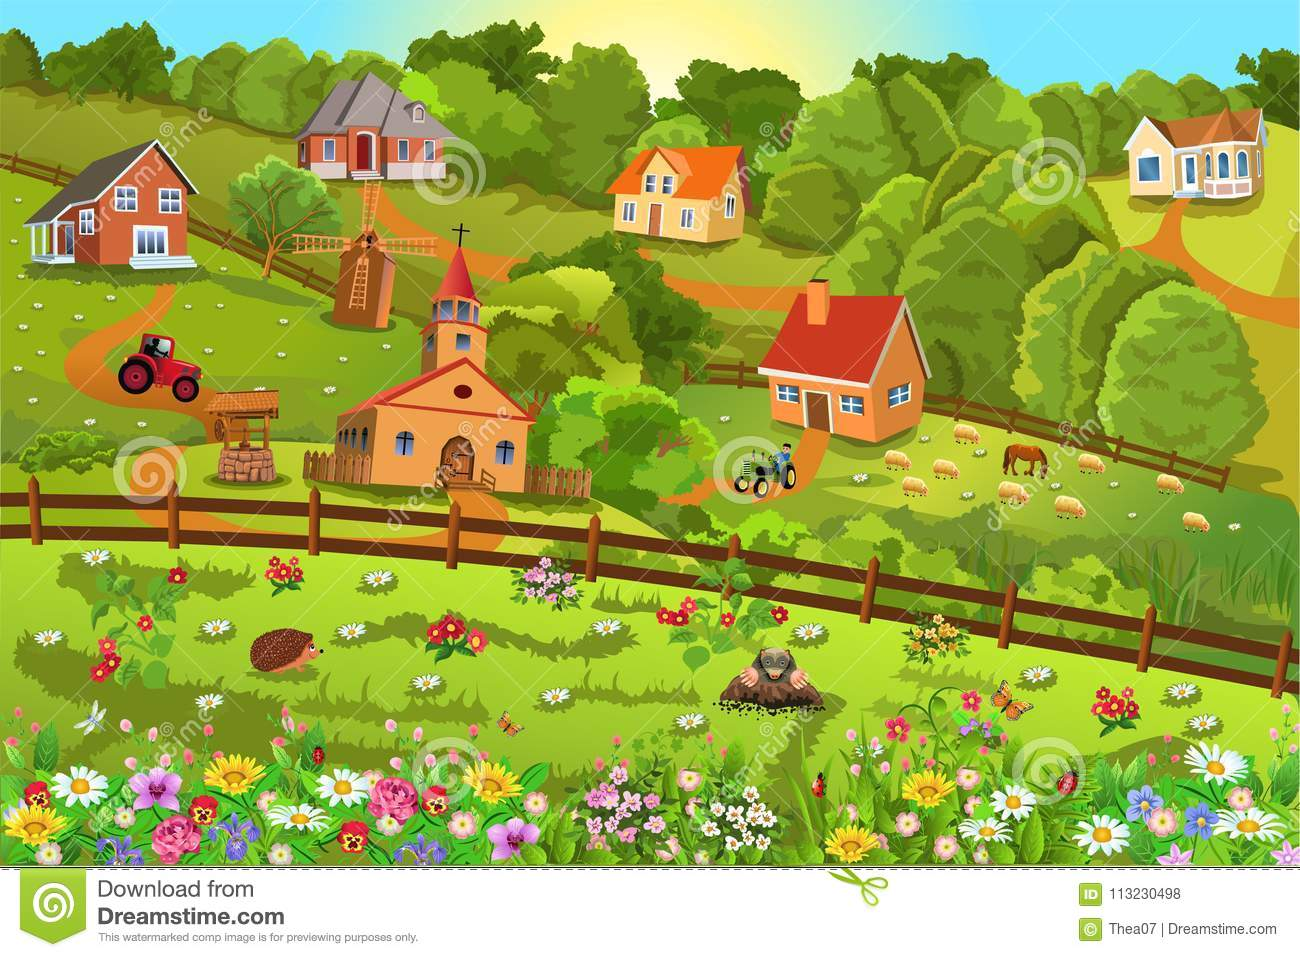 Vector illustration of a small village on hills with lots of flowers all around